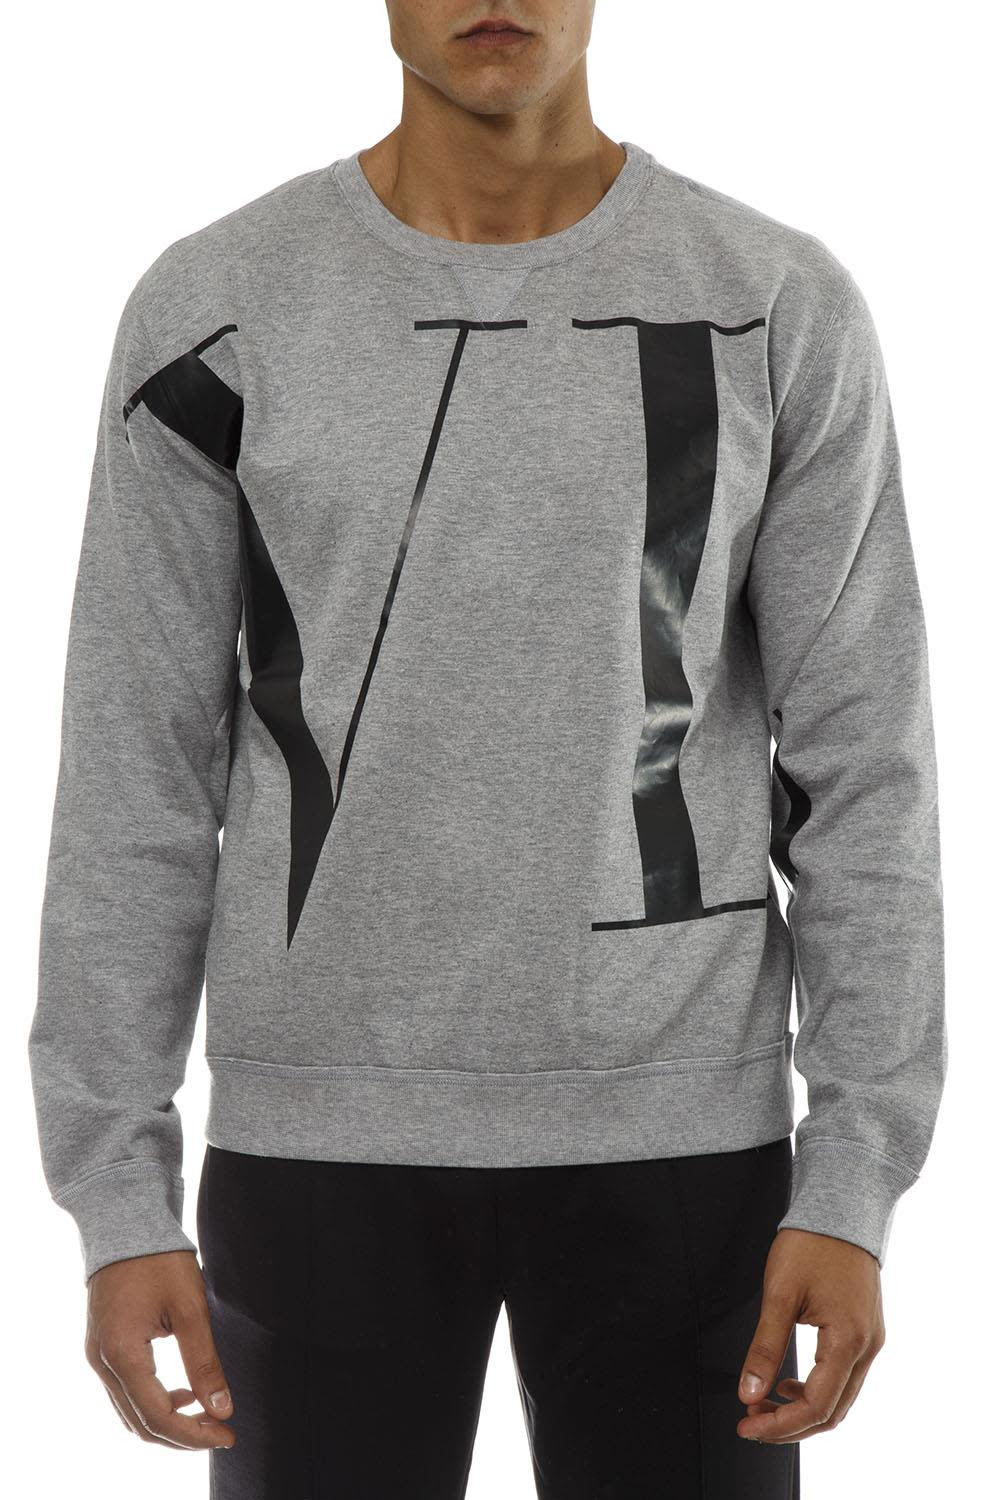 VALENTINO VLTN GREY COTTON SWEATSHIRT